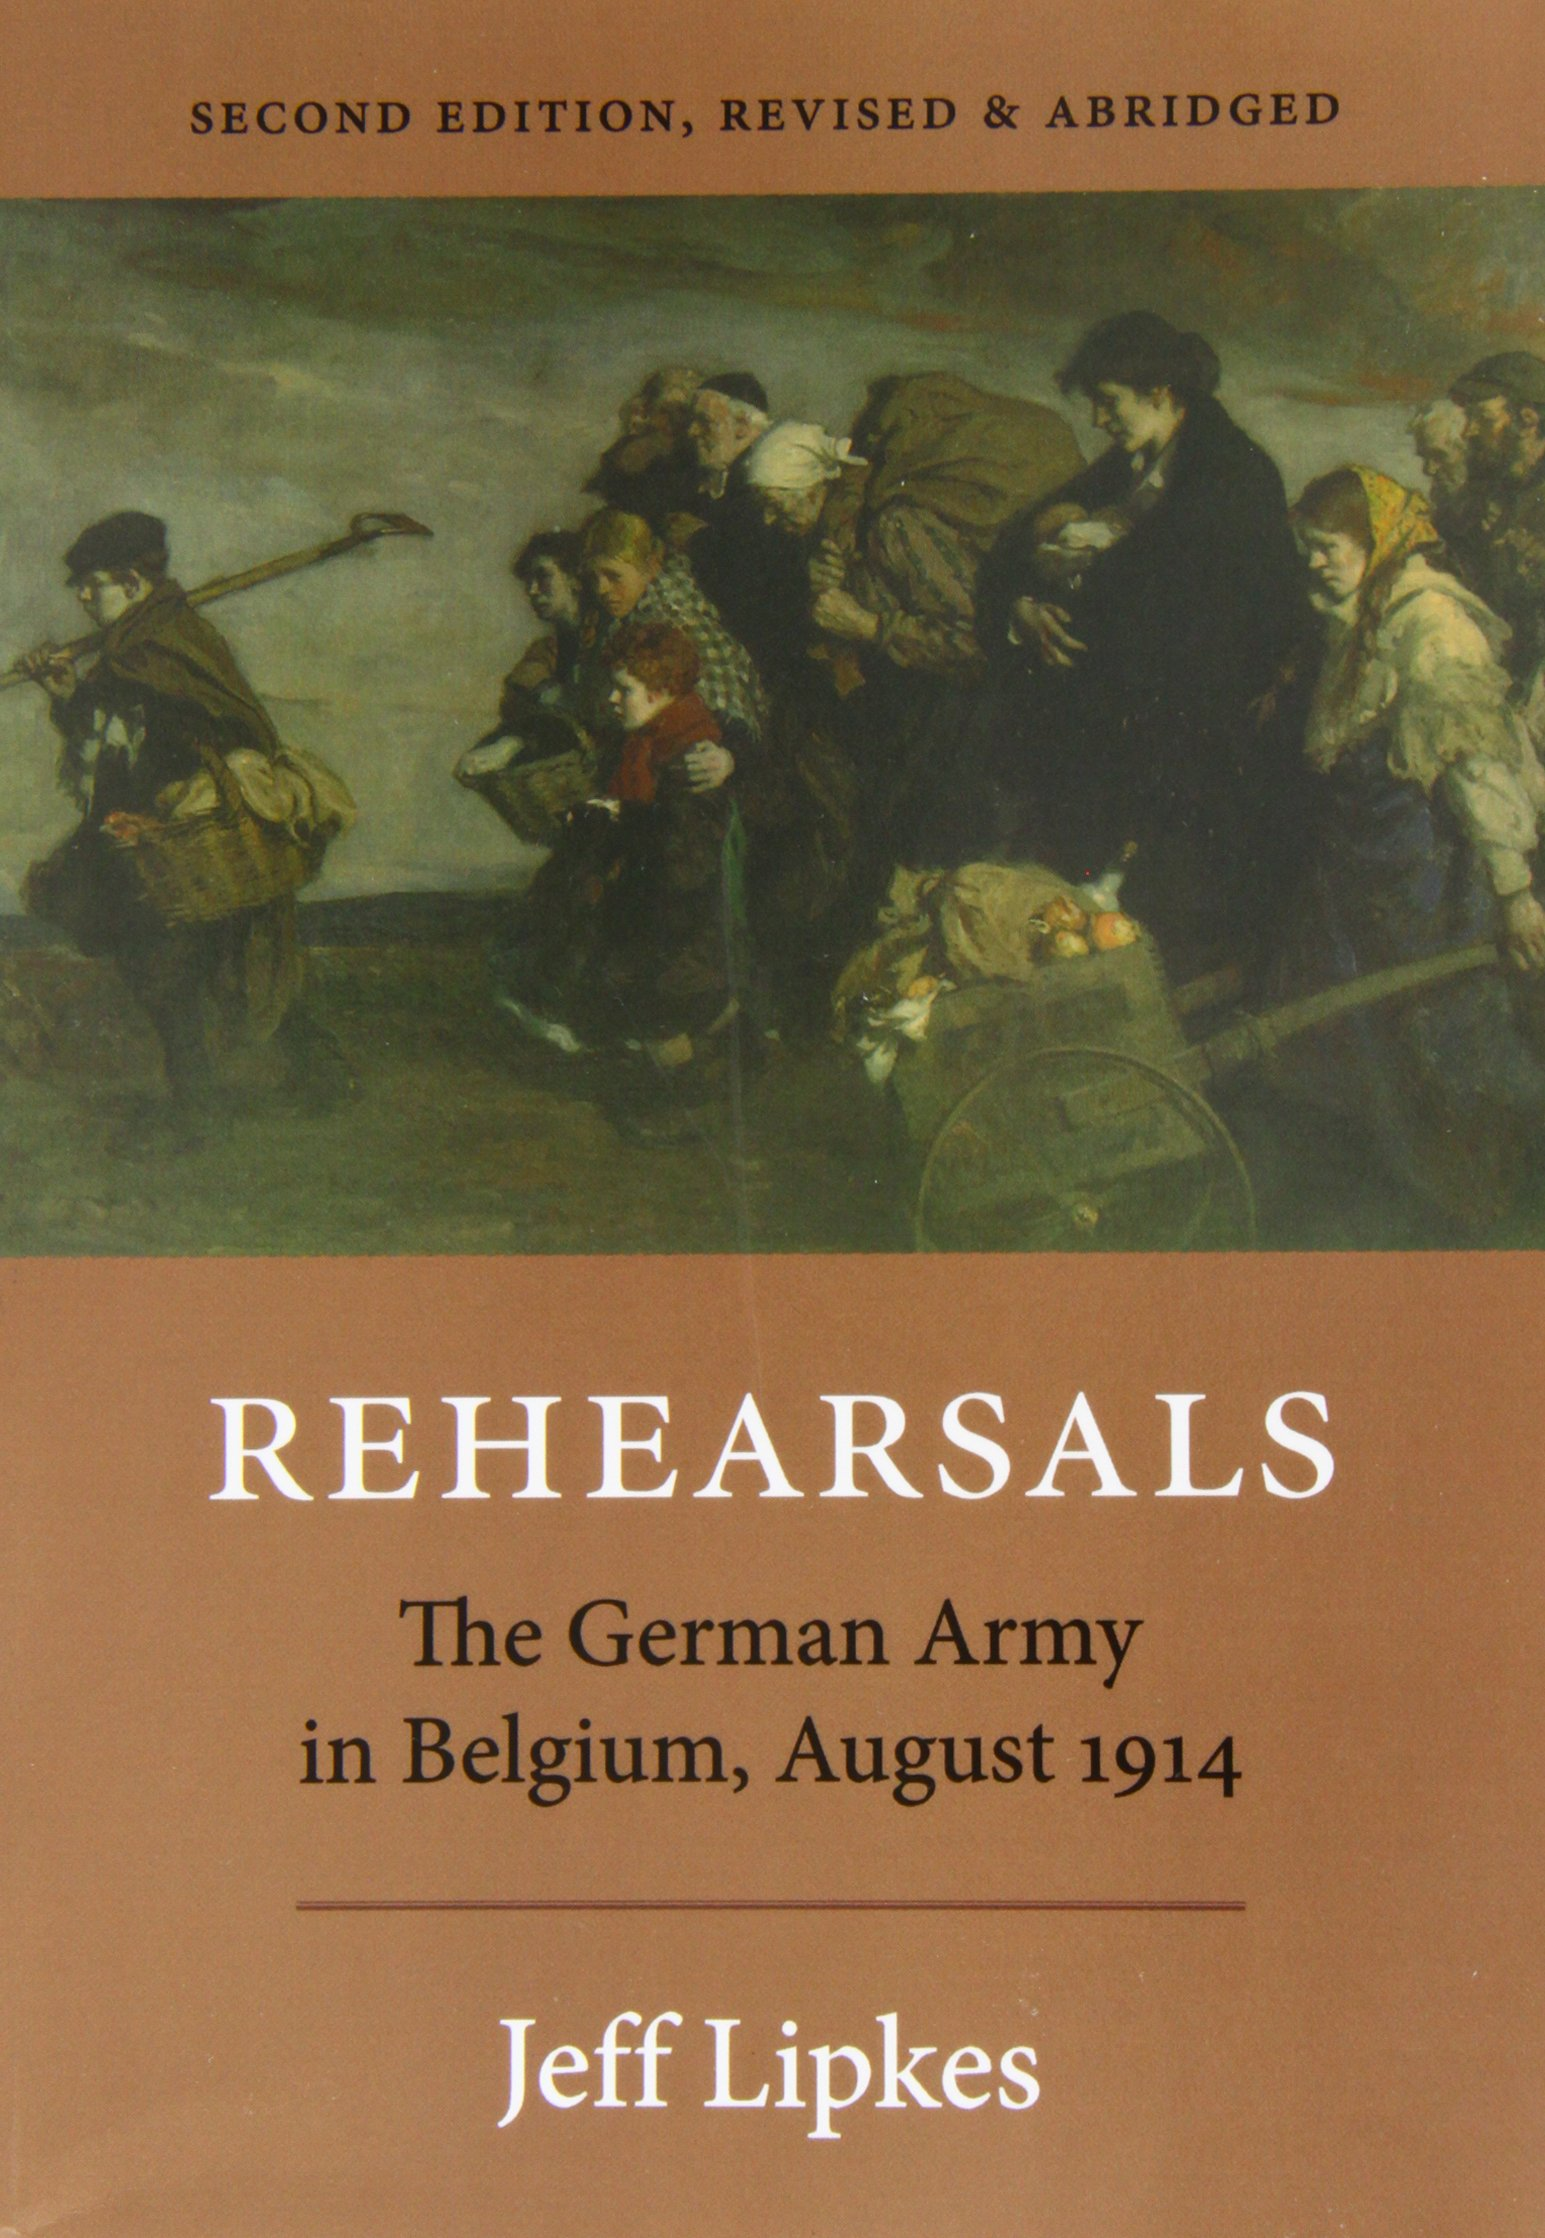 Rehearsals: The German Army in Belgium, August 1914